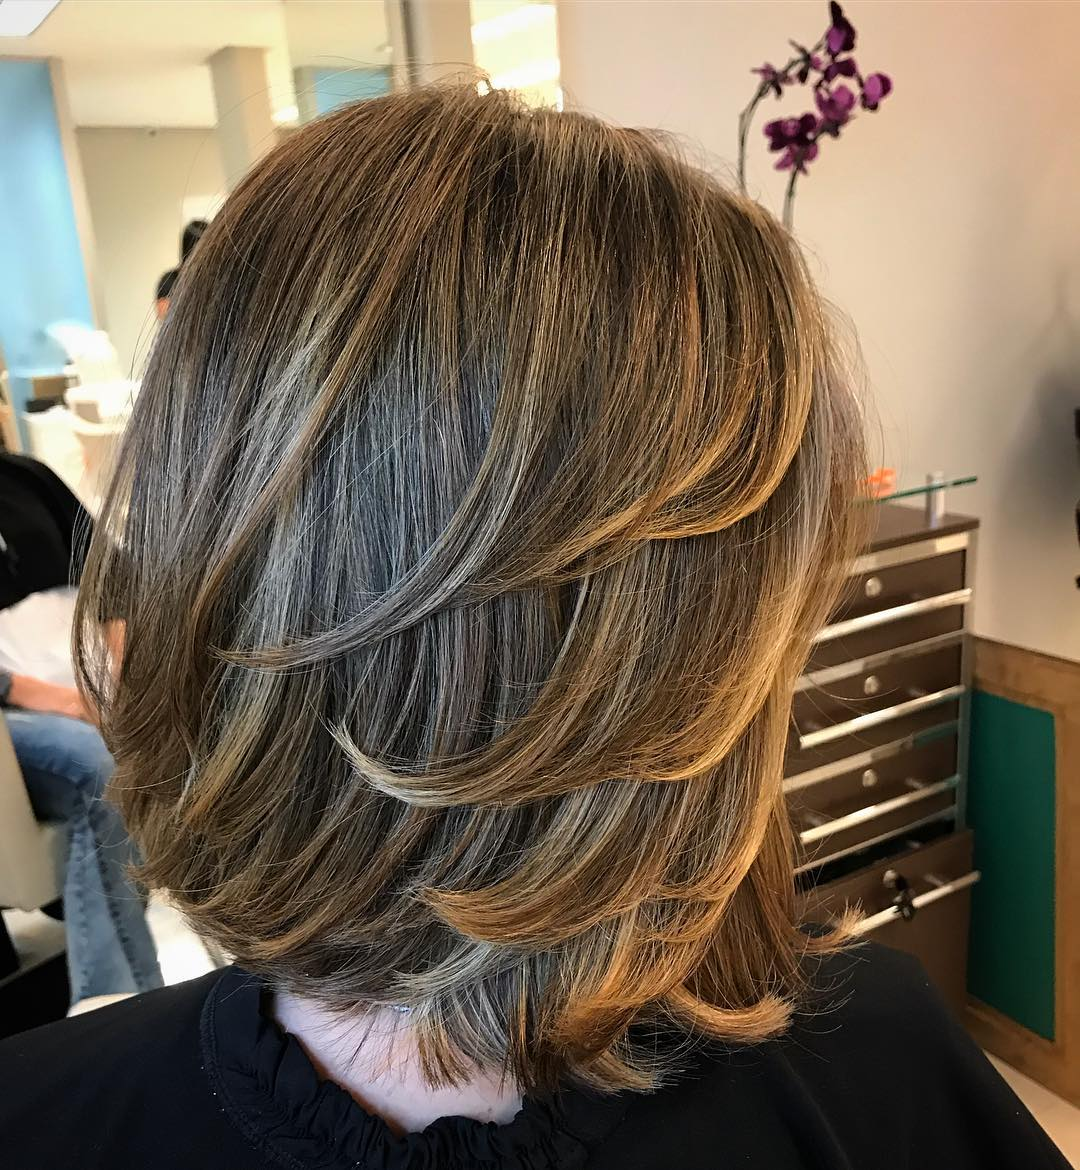 Layered Cut for Straight Hair